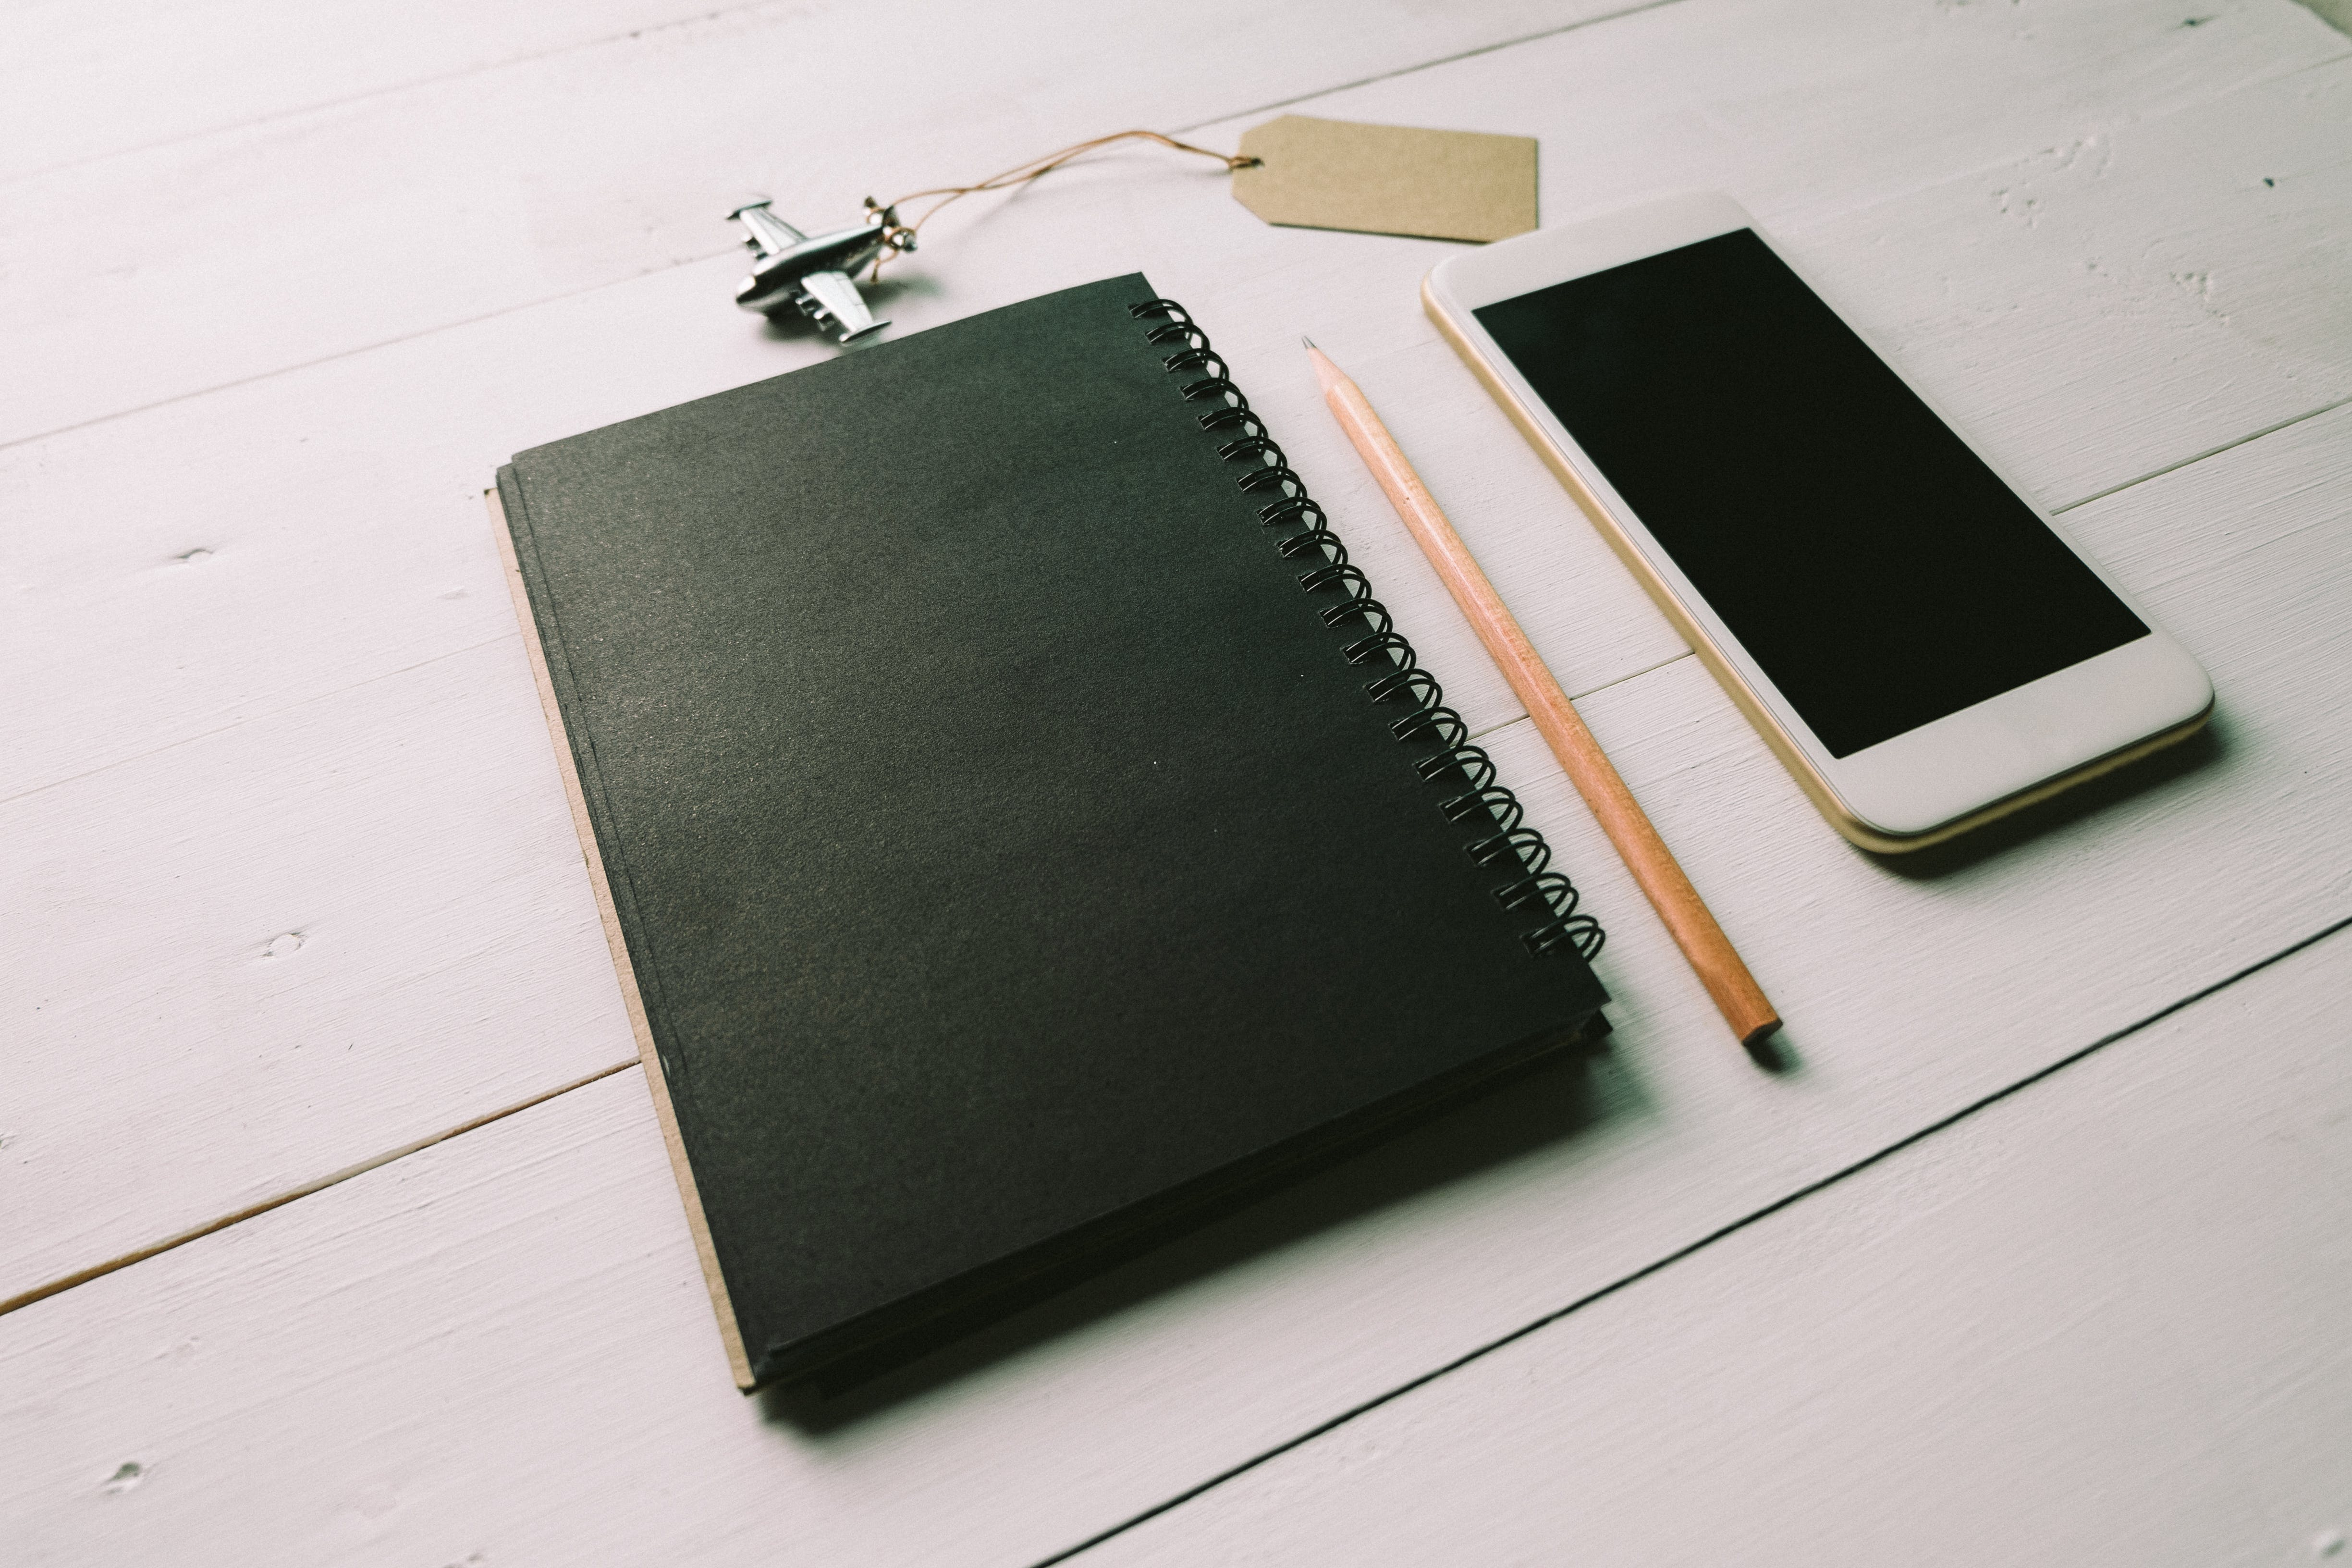 Flatlay Photo of Black Spiral Book Near Brown Pencil and White Smartphone